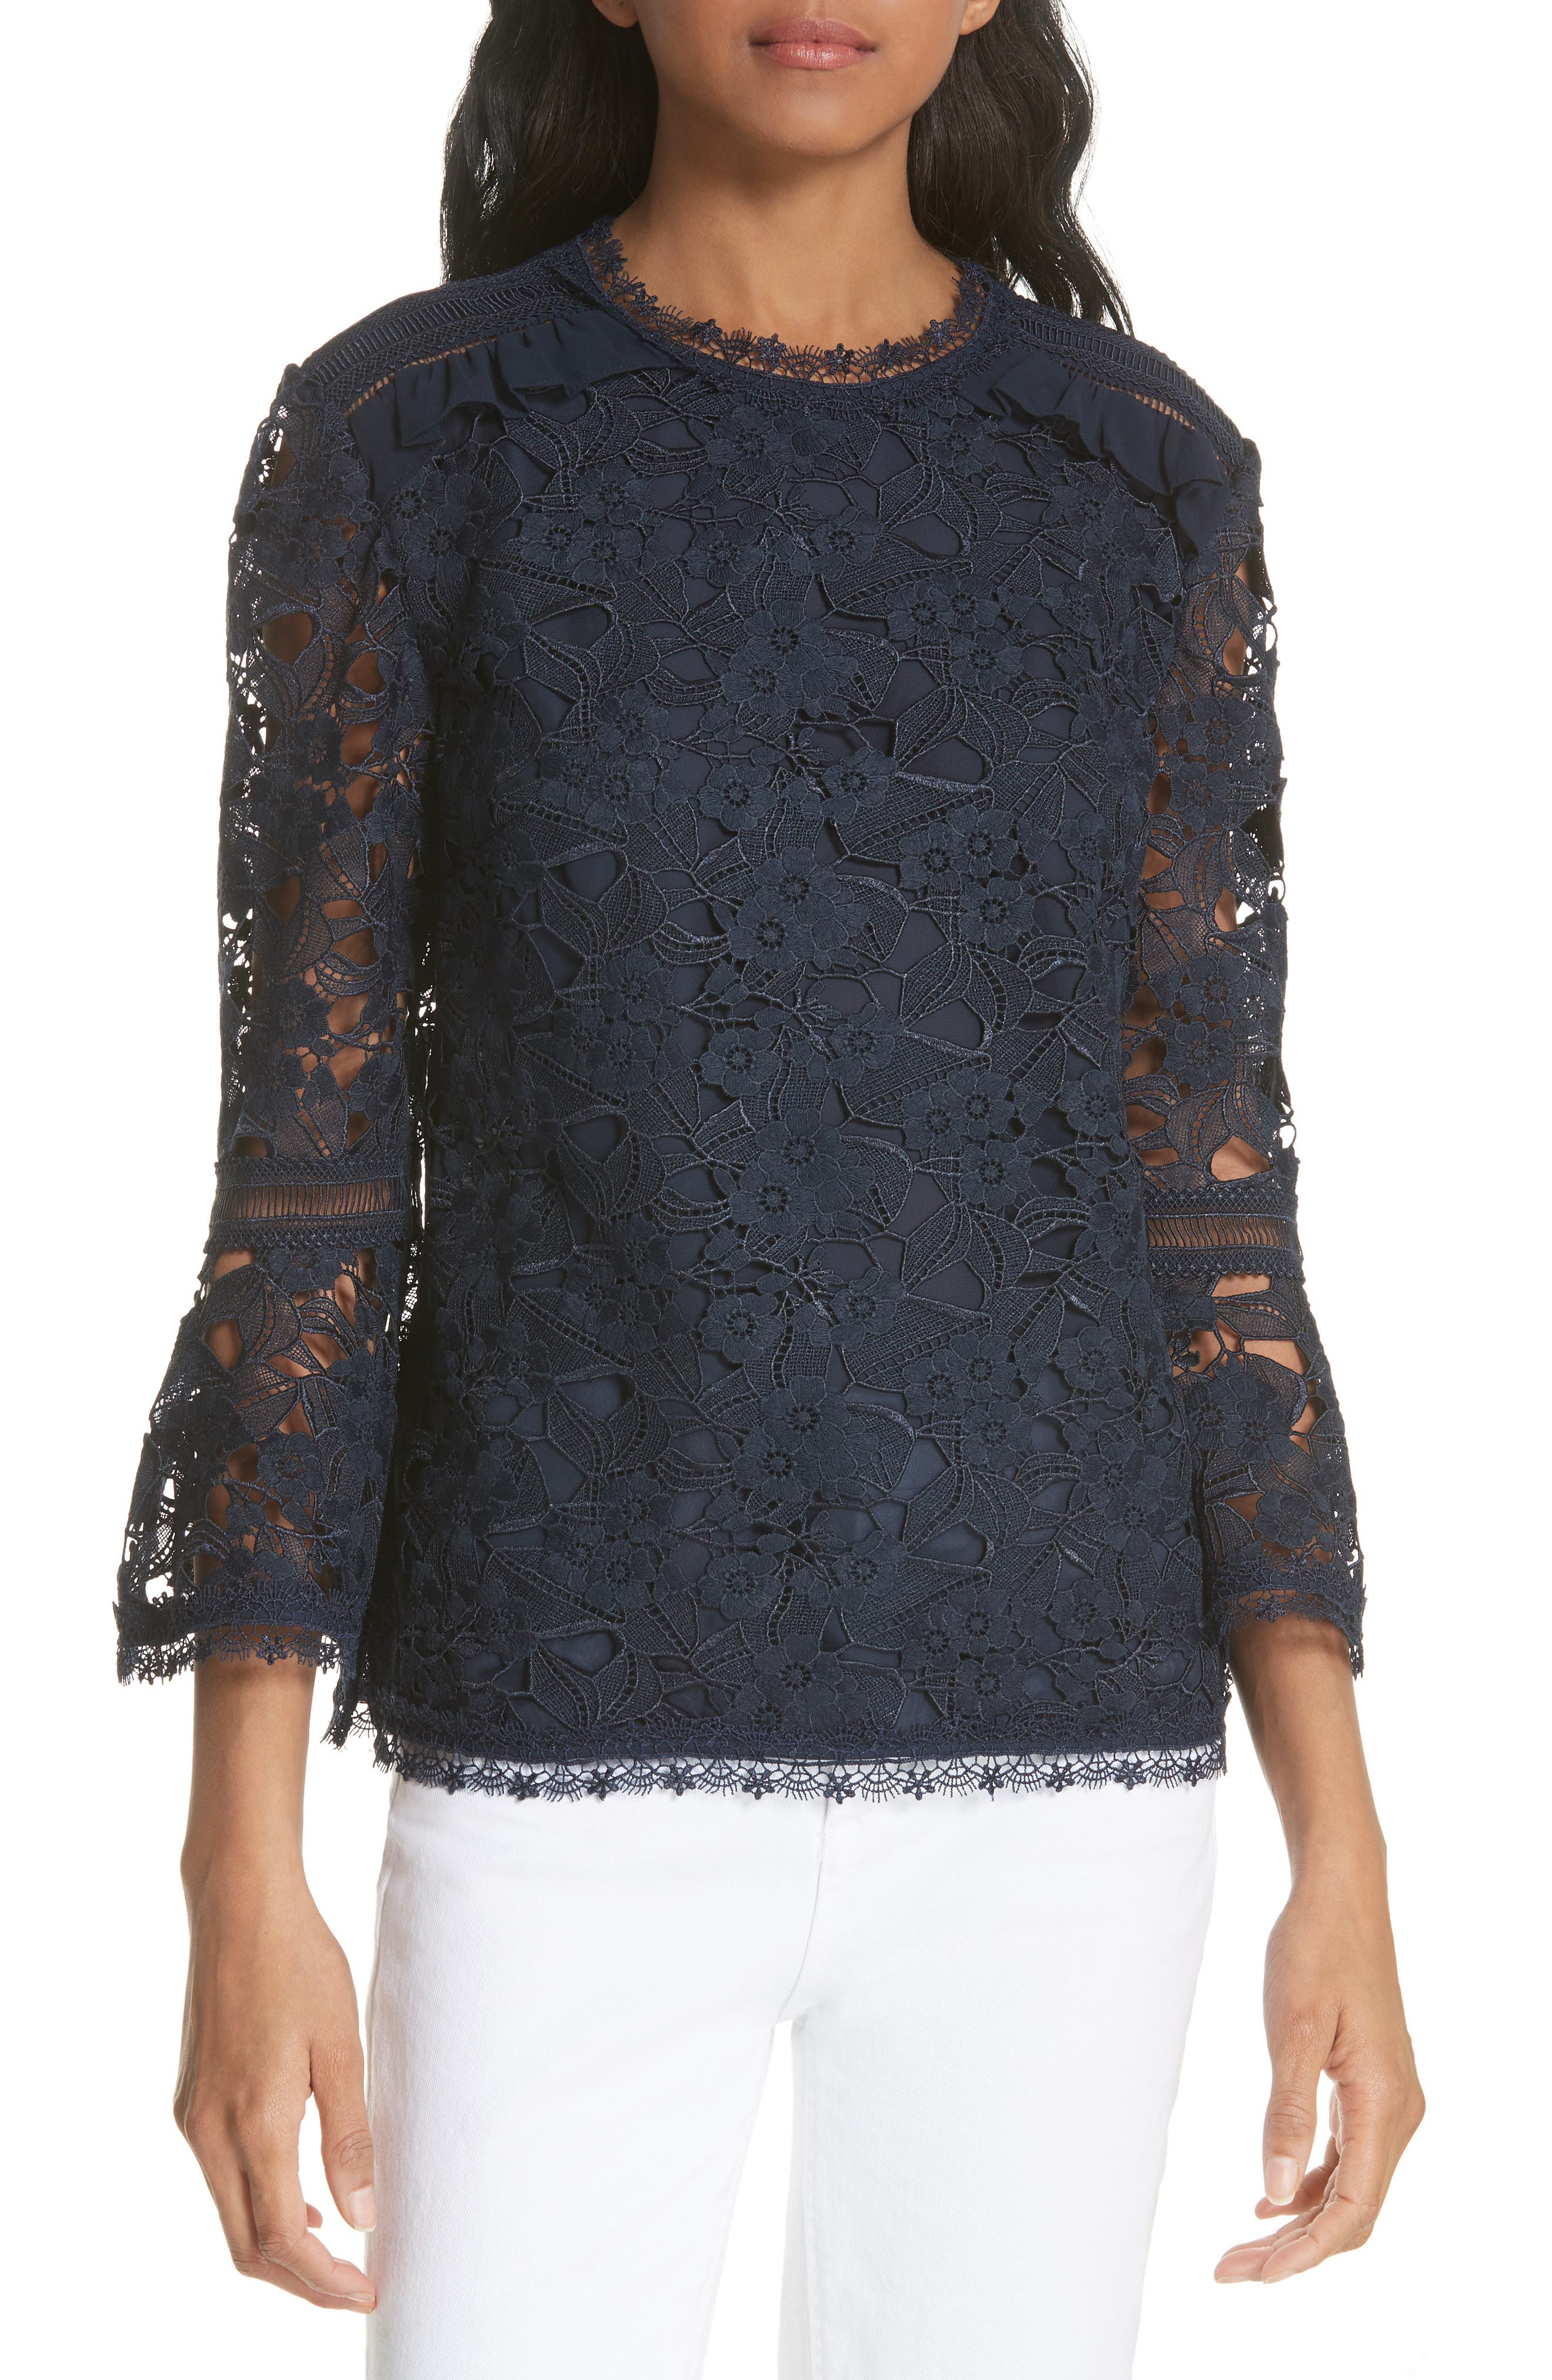 TED BAKER LONDON Flare Cuff Lace Top, Main, color, 410